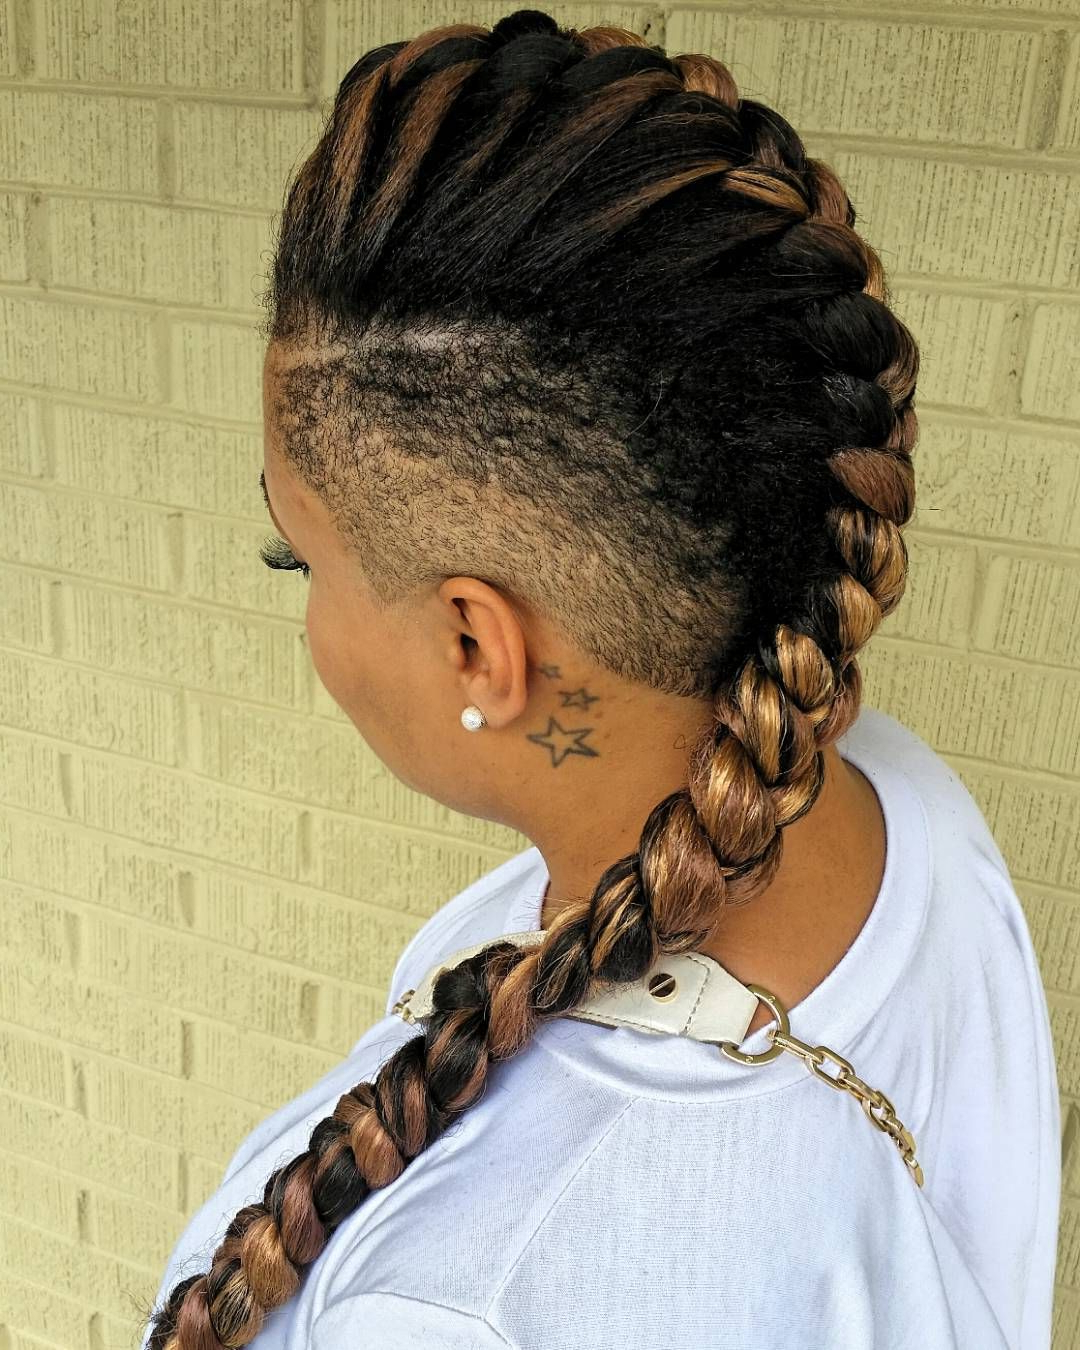 Well Liked Braided Mohawk Hairstyles Within 22 Goddess Braids Hairstyles: Includes Photos & Video Tutorials (View 13 of 20)